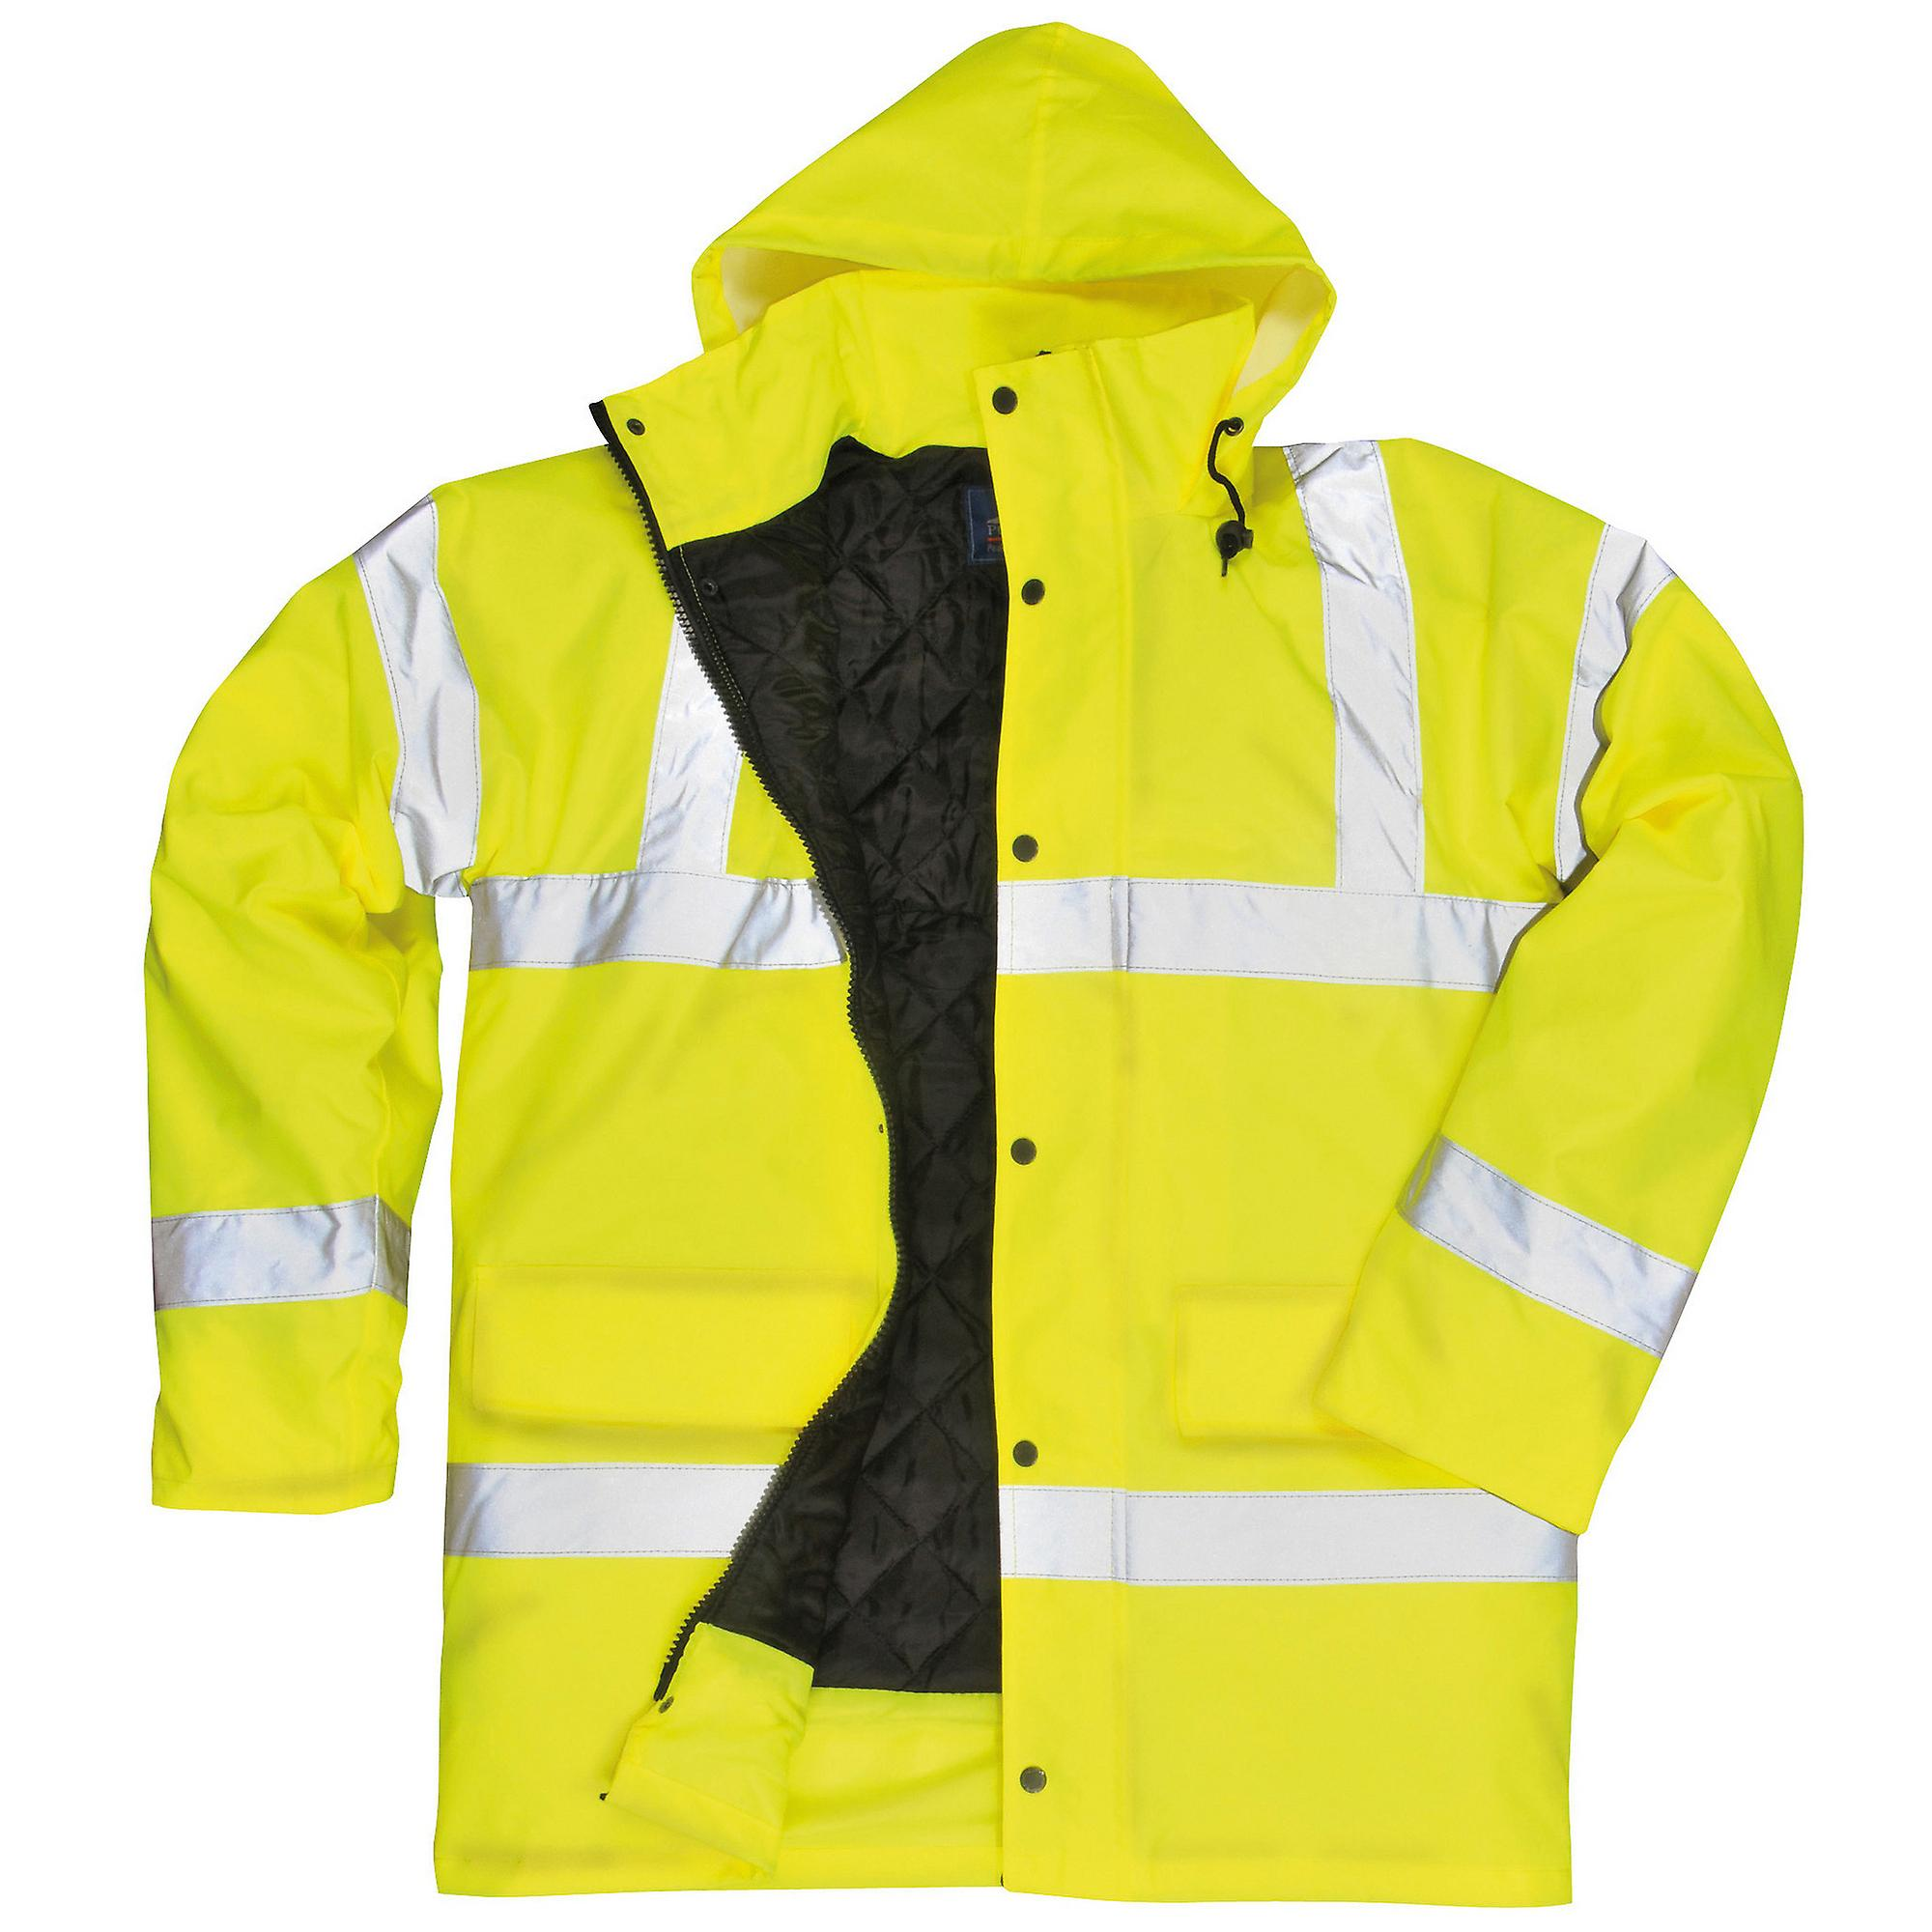 Portwest Hi-Vis Traffic veste (S460)   vêtehommests de travail   Safetywear (Pack of 2)